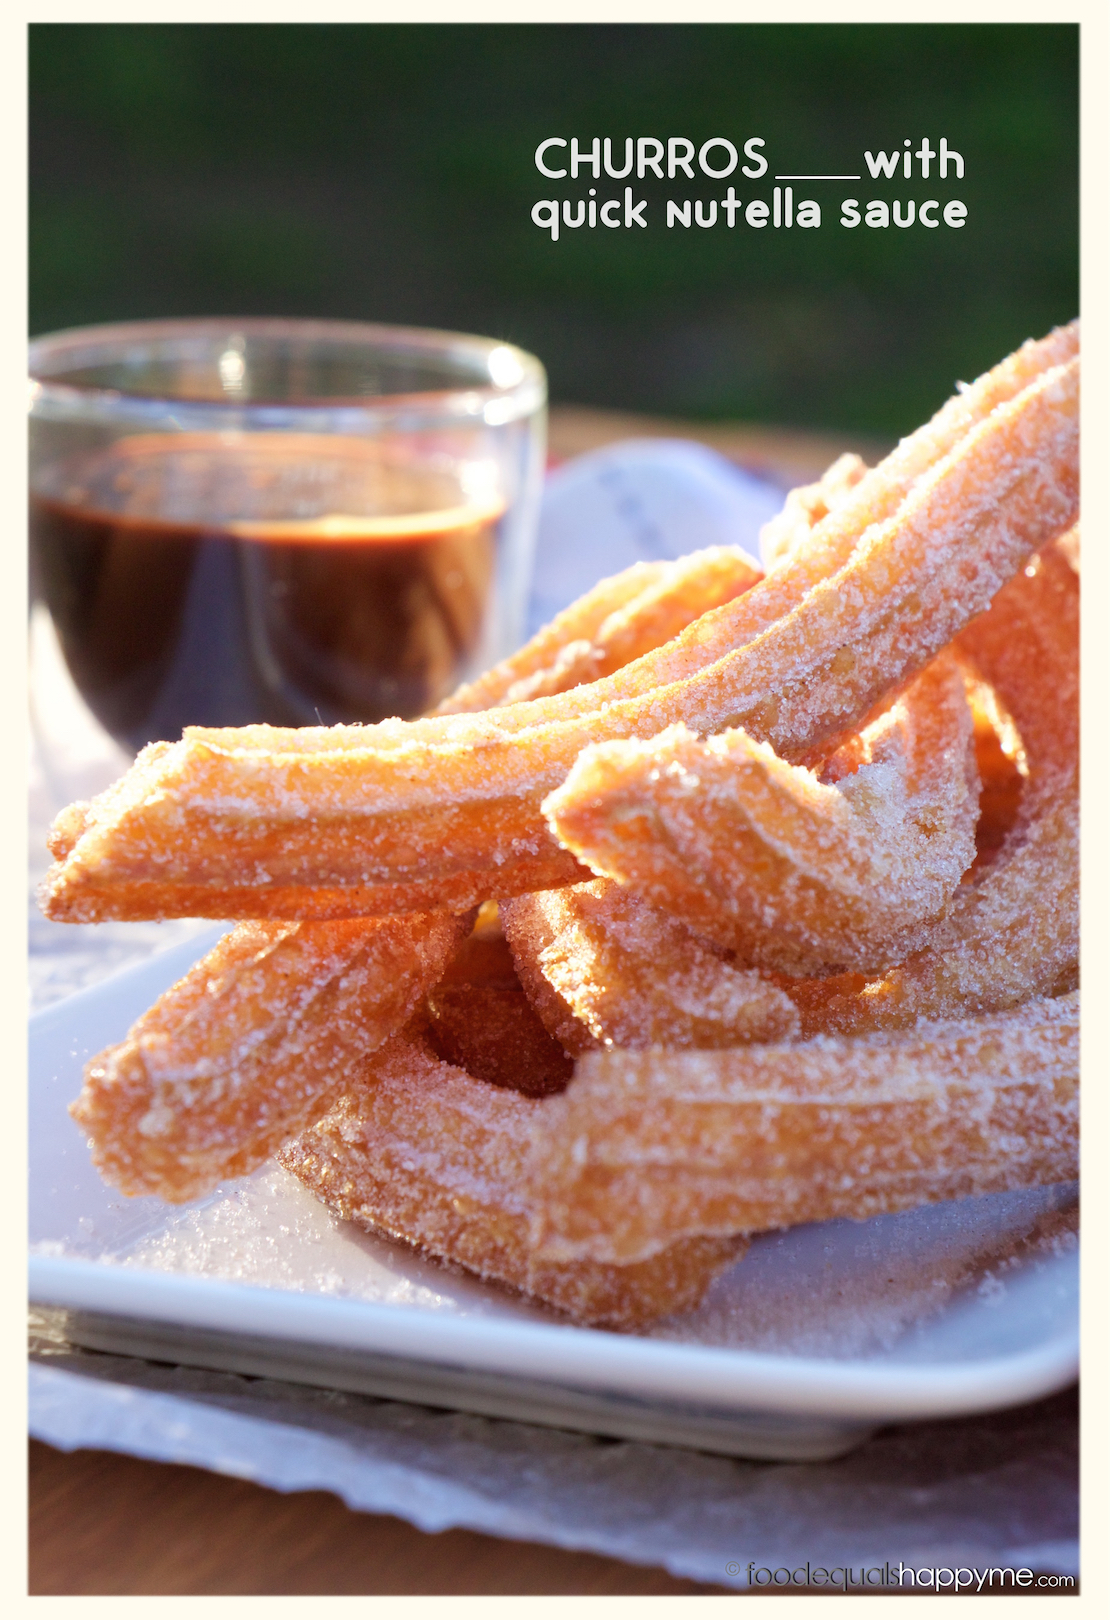 Churros with Quick Nutella Sauce | Food Equals Happy Me